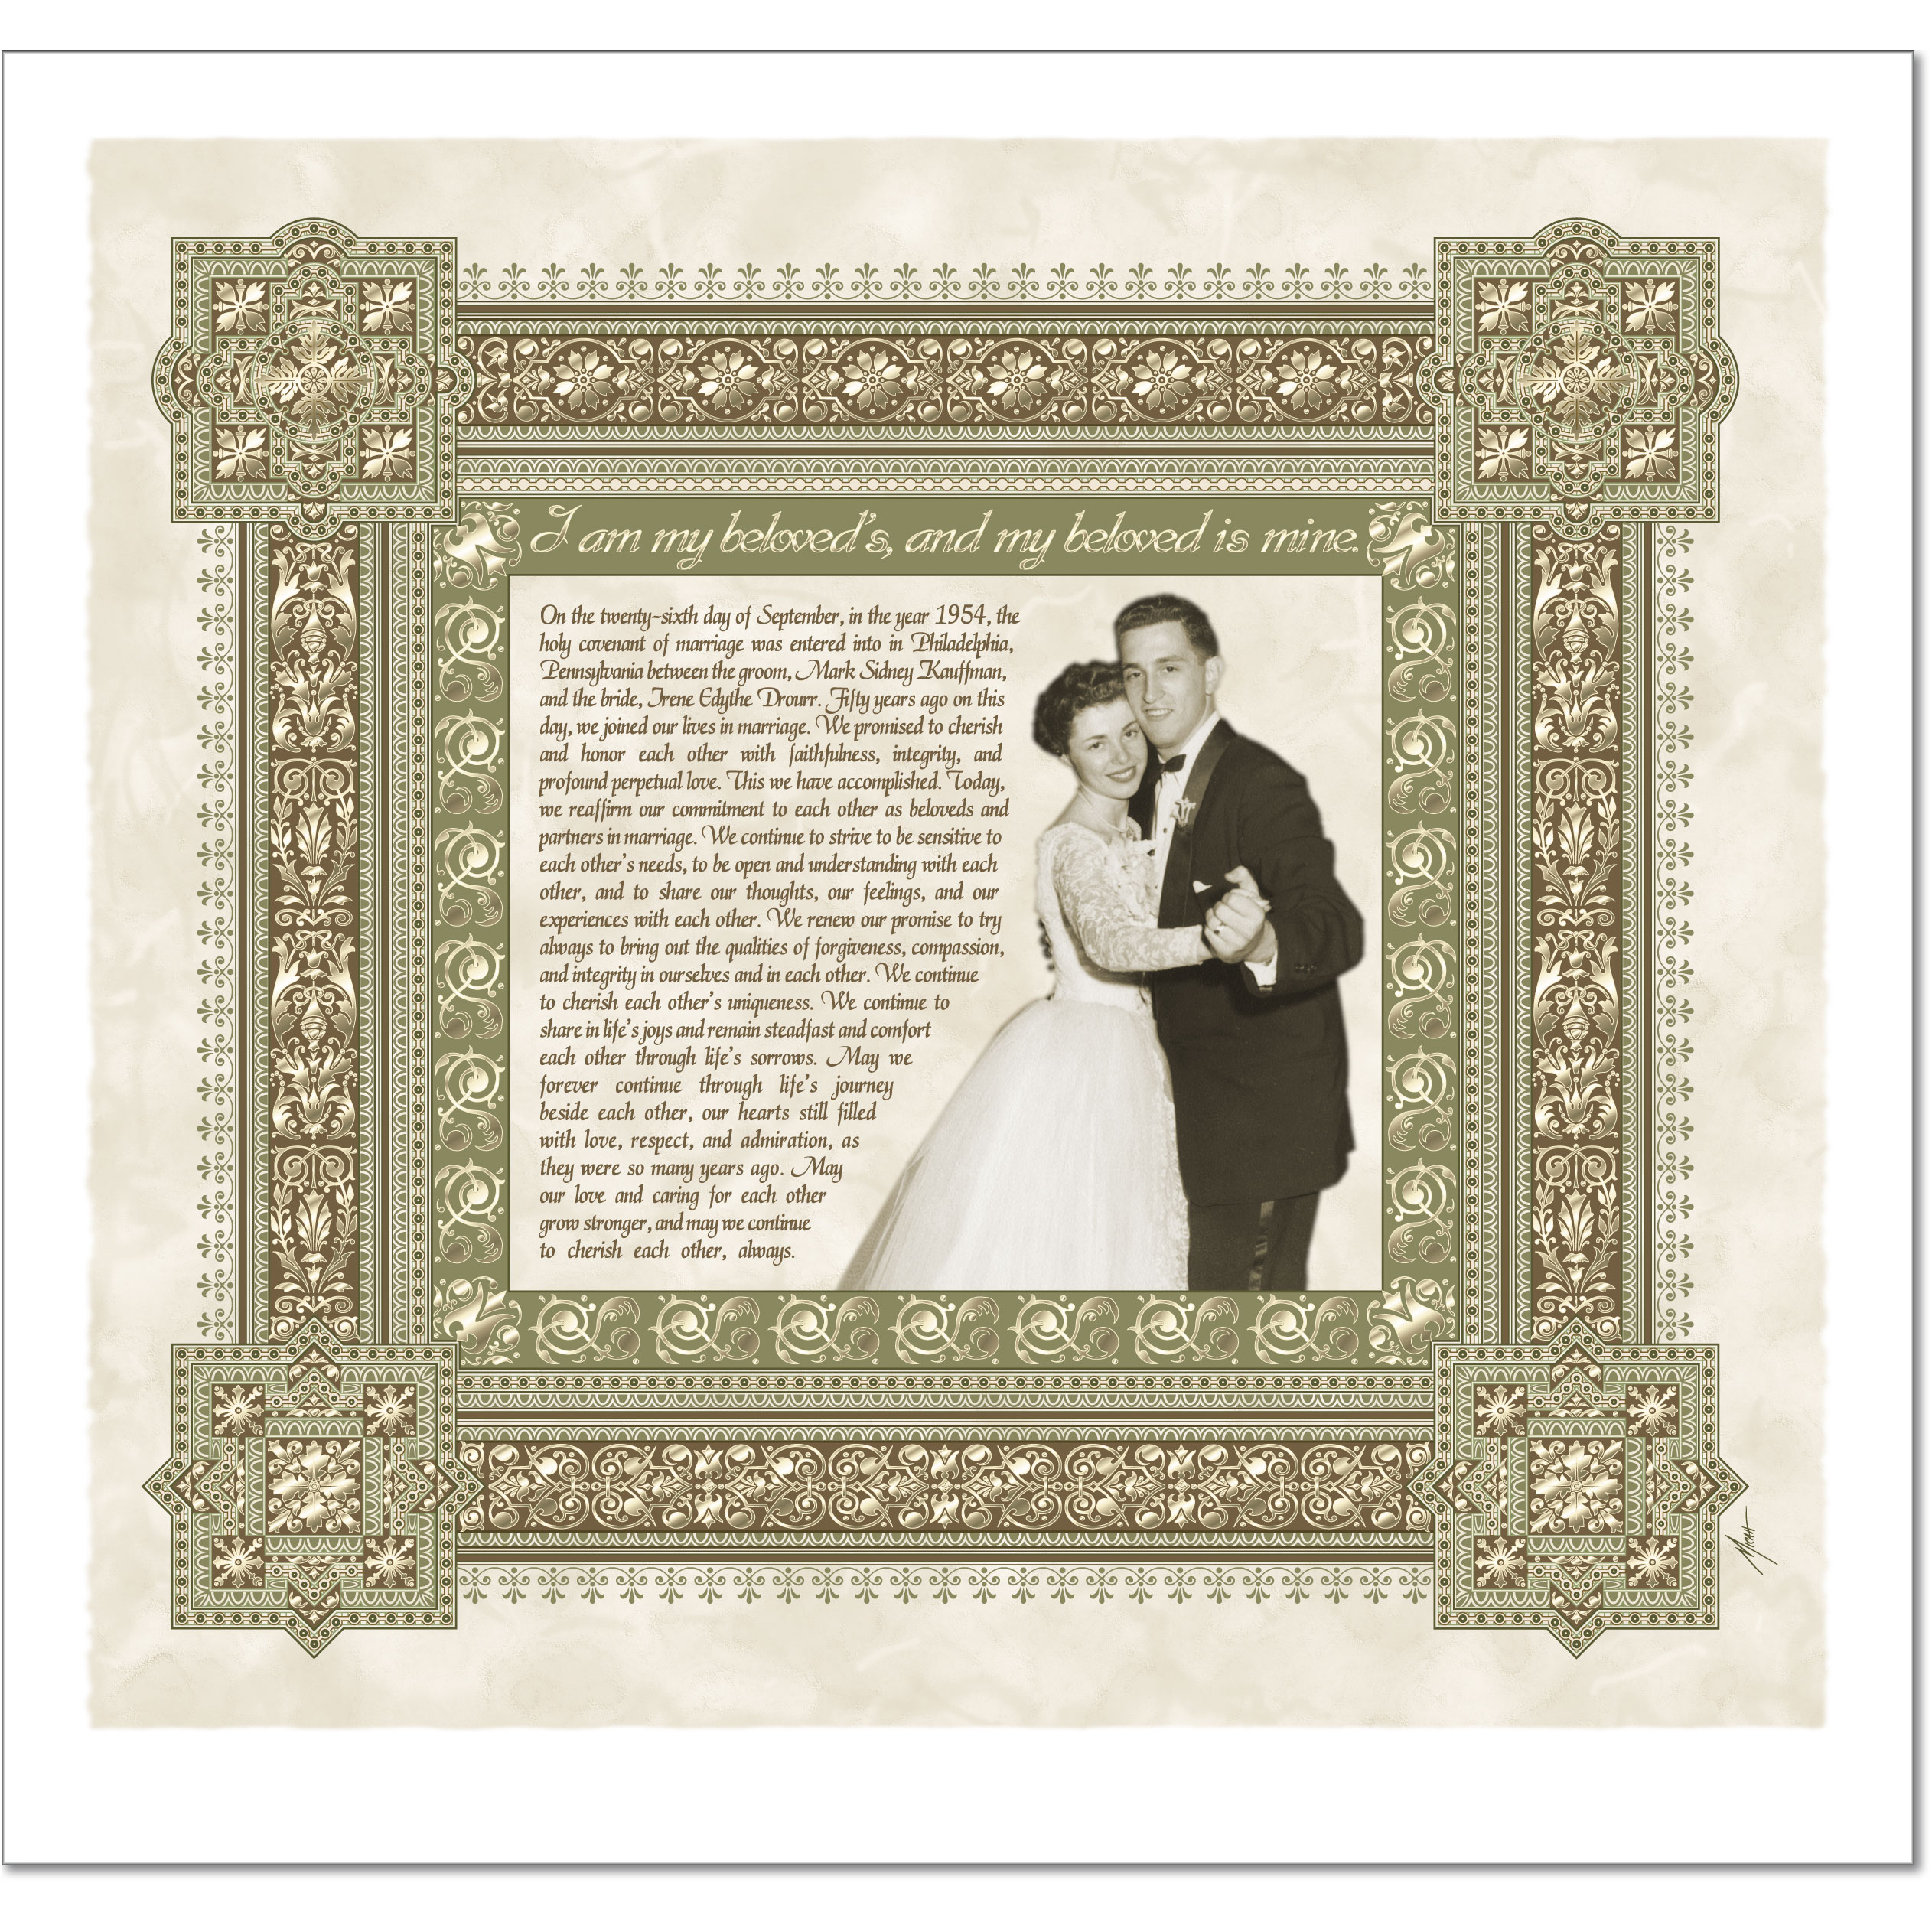 Gift of Love - Original - English Only Ketubah  Ketubah by Micah Parker